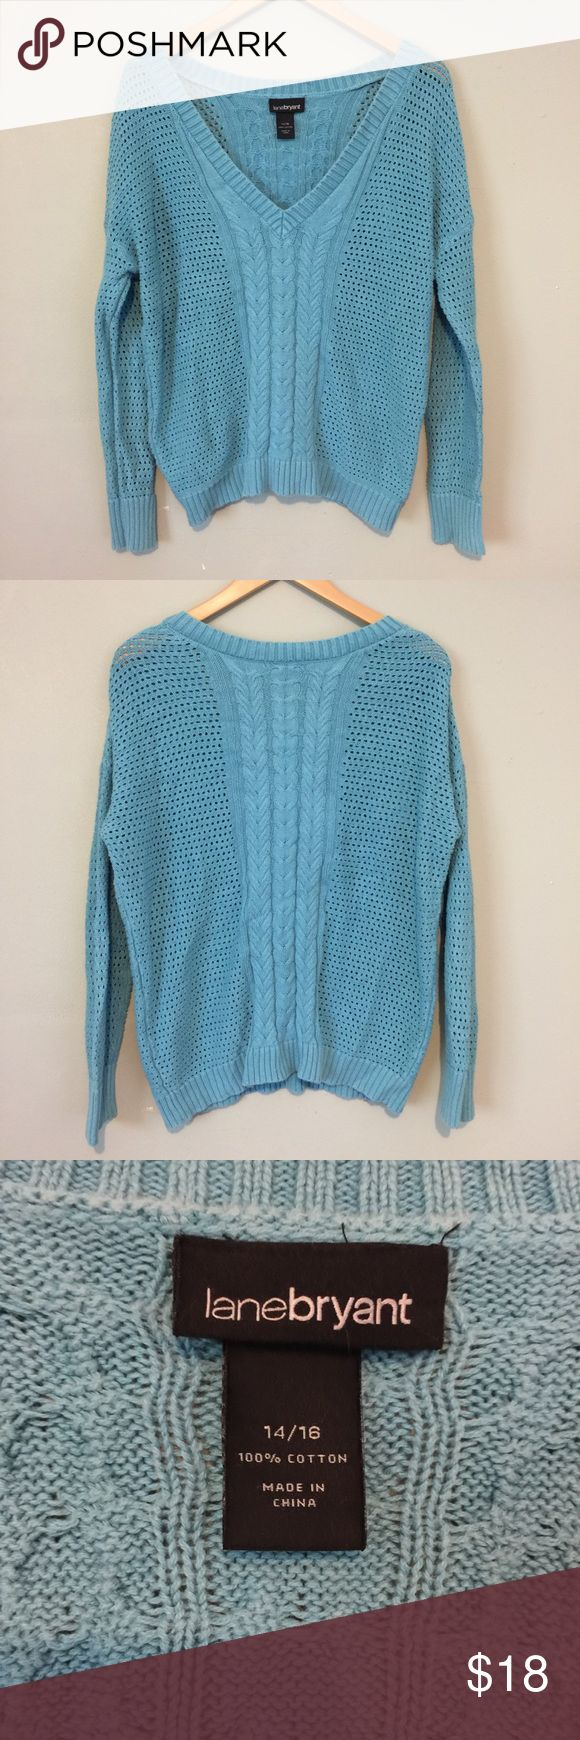 Lane Bryant knit loose for sweater blue aqua v Worn but great condition. Worn meaning there is a little fading but looks like the style. This sweater is a little short hitting right at the tops of the jeans for me. This is not a crop however. I would say it fits a medium or large best if you like the looser look like I do. Lane Bryant Sweaters V-Necks